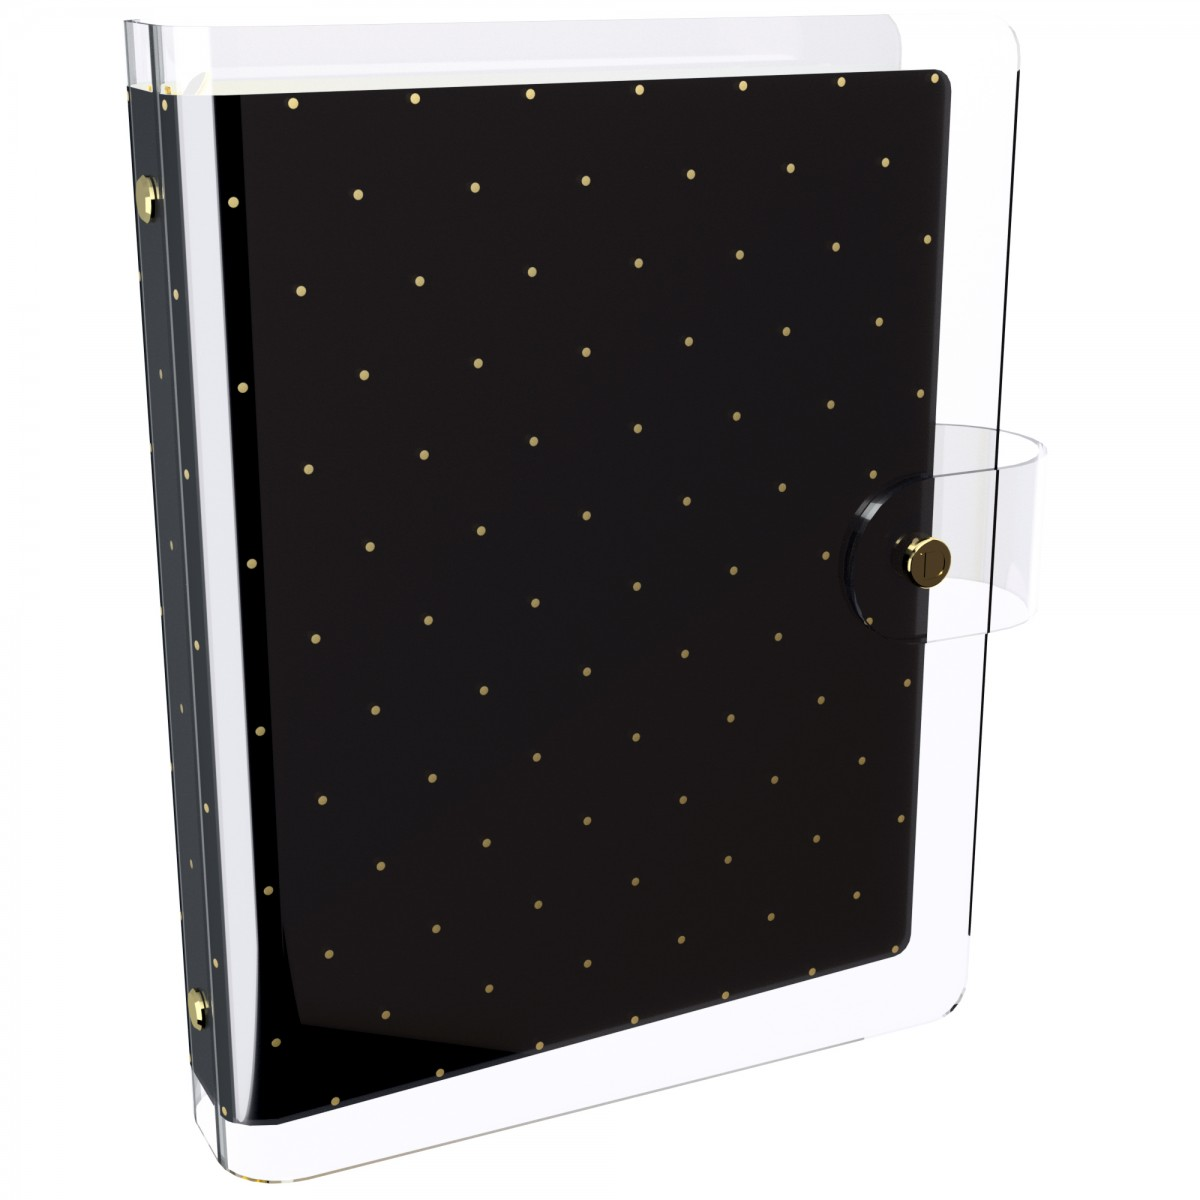 DISCAGENDA CLARITY CLEAR PVC PLANNER COVER - BLACK WITH GOLD POLKA DOTS, RINGBOUND, A5 SIZE